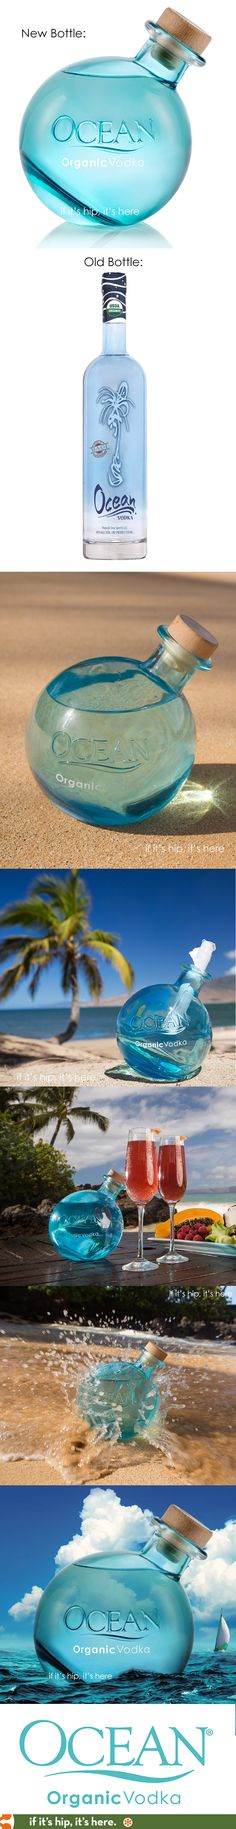 Ocean Vodka had just unveiled their new bottle design. The organic vodka bottle was inspired by old glass fishing net 'floats'. So much better than the old one!